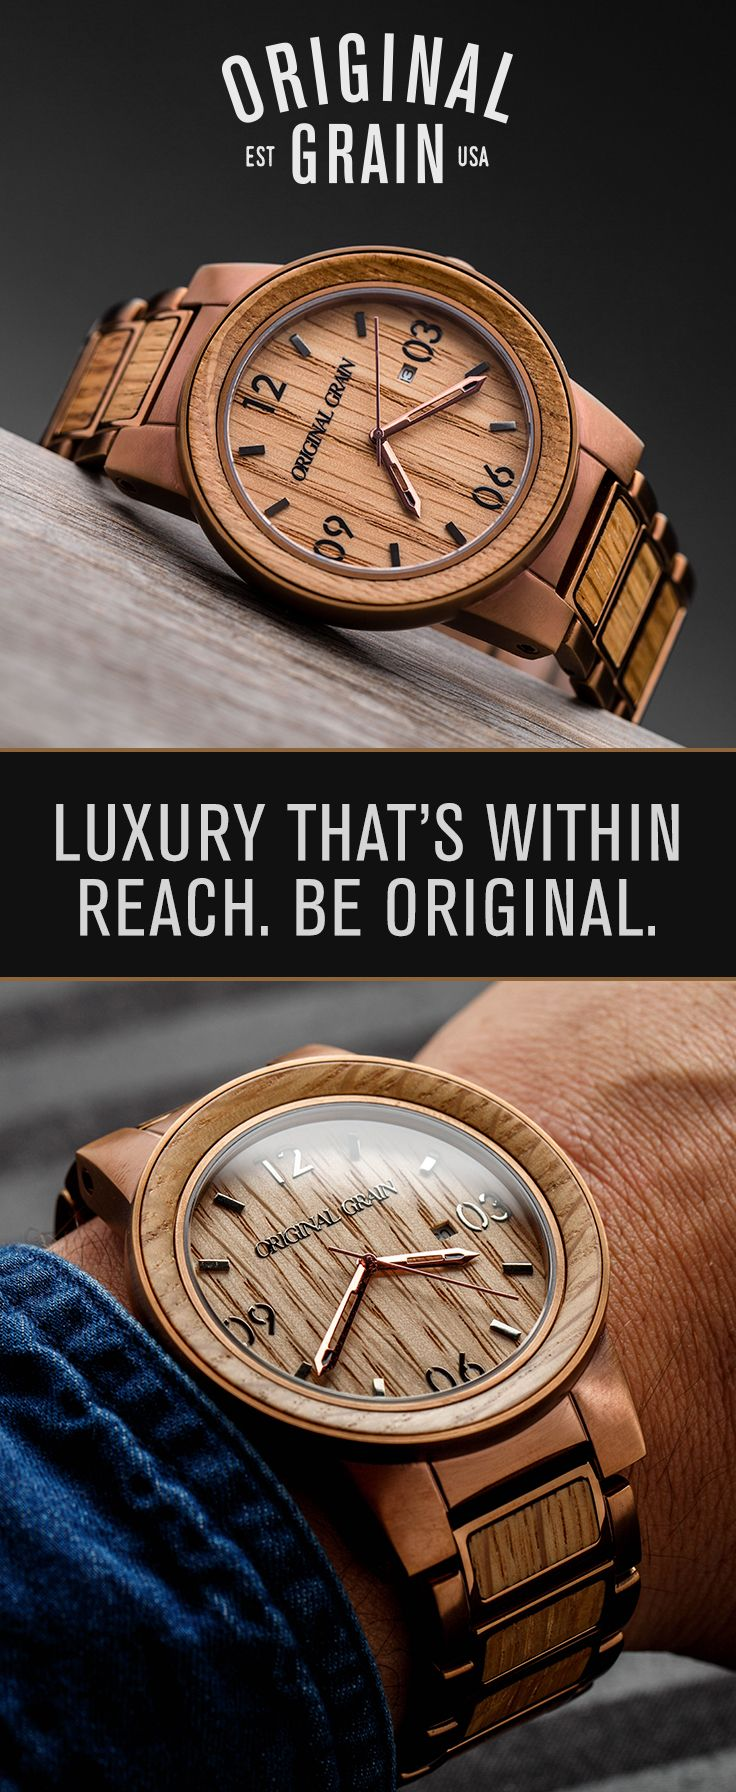 watches wrist barrel box unique valet ideas watch n handcrafted buy online gifts whiskey reclaimed